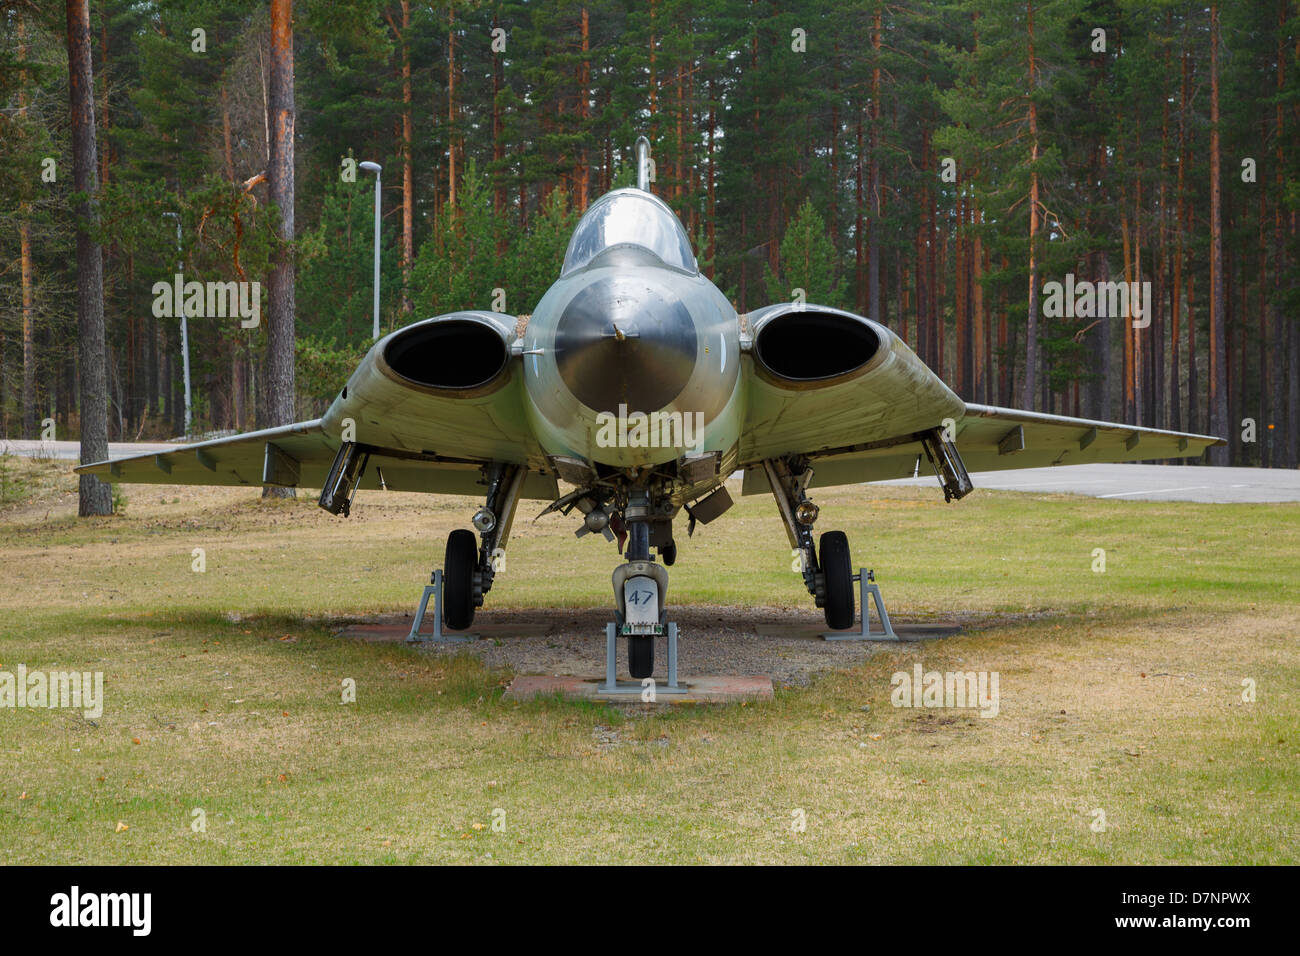 A retired Swedish-made Saab J-35 Draken fighter of the Finnish Air Force on display at the Halli base of Kuorevesi, - Stock Image